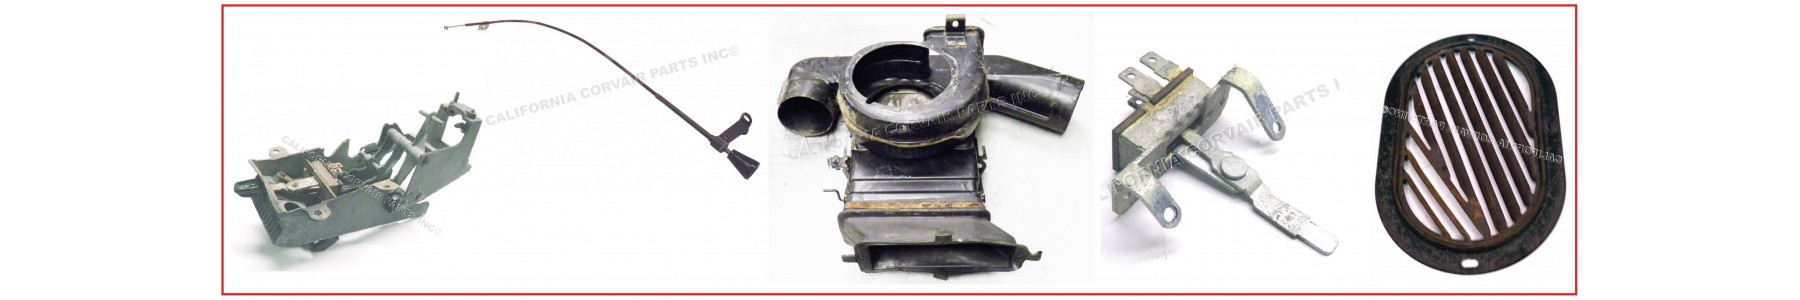 USED HEATER PARTS